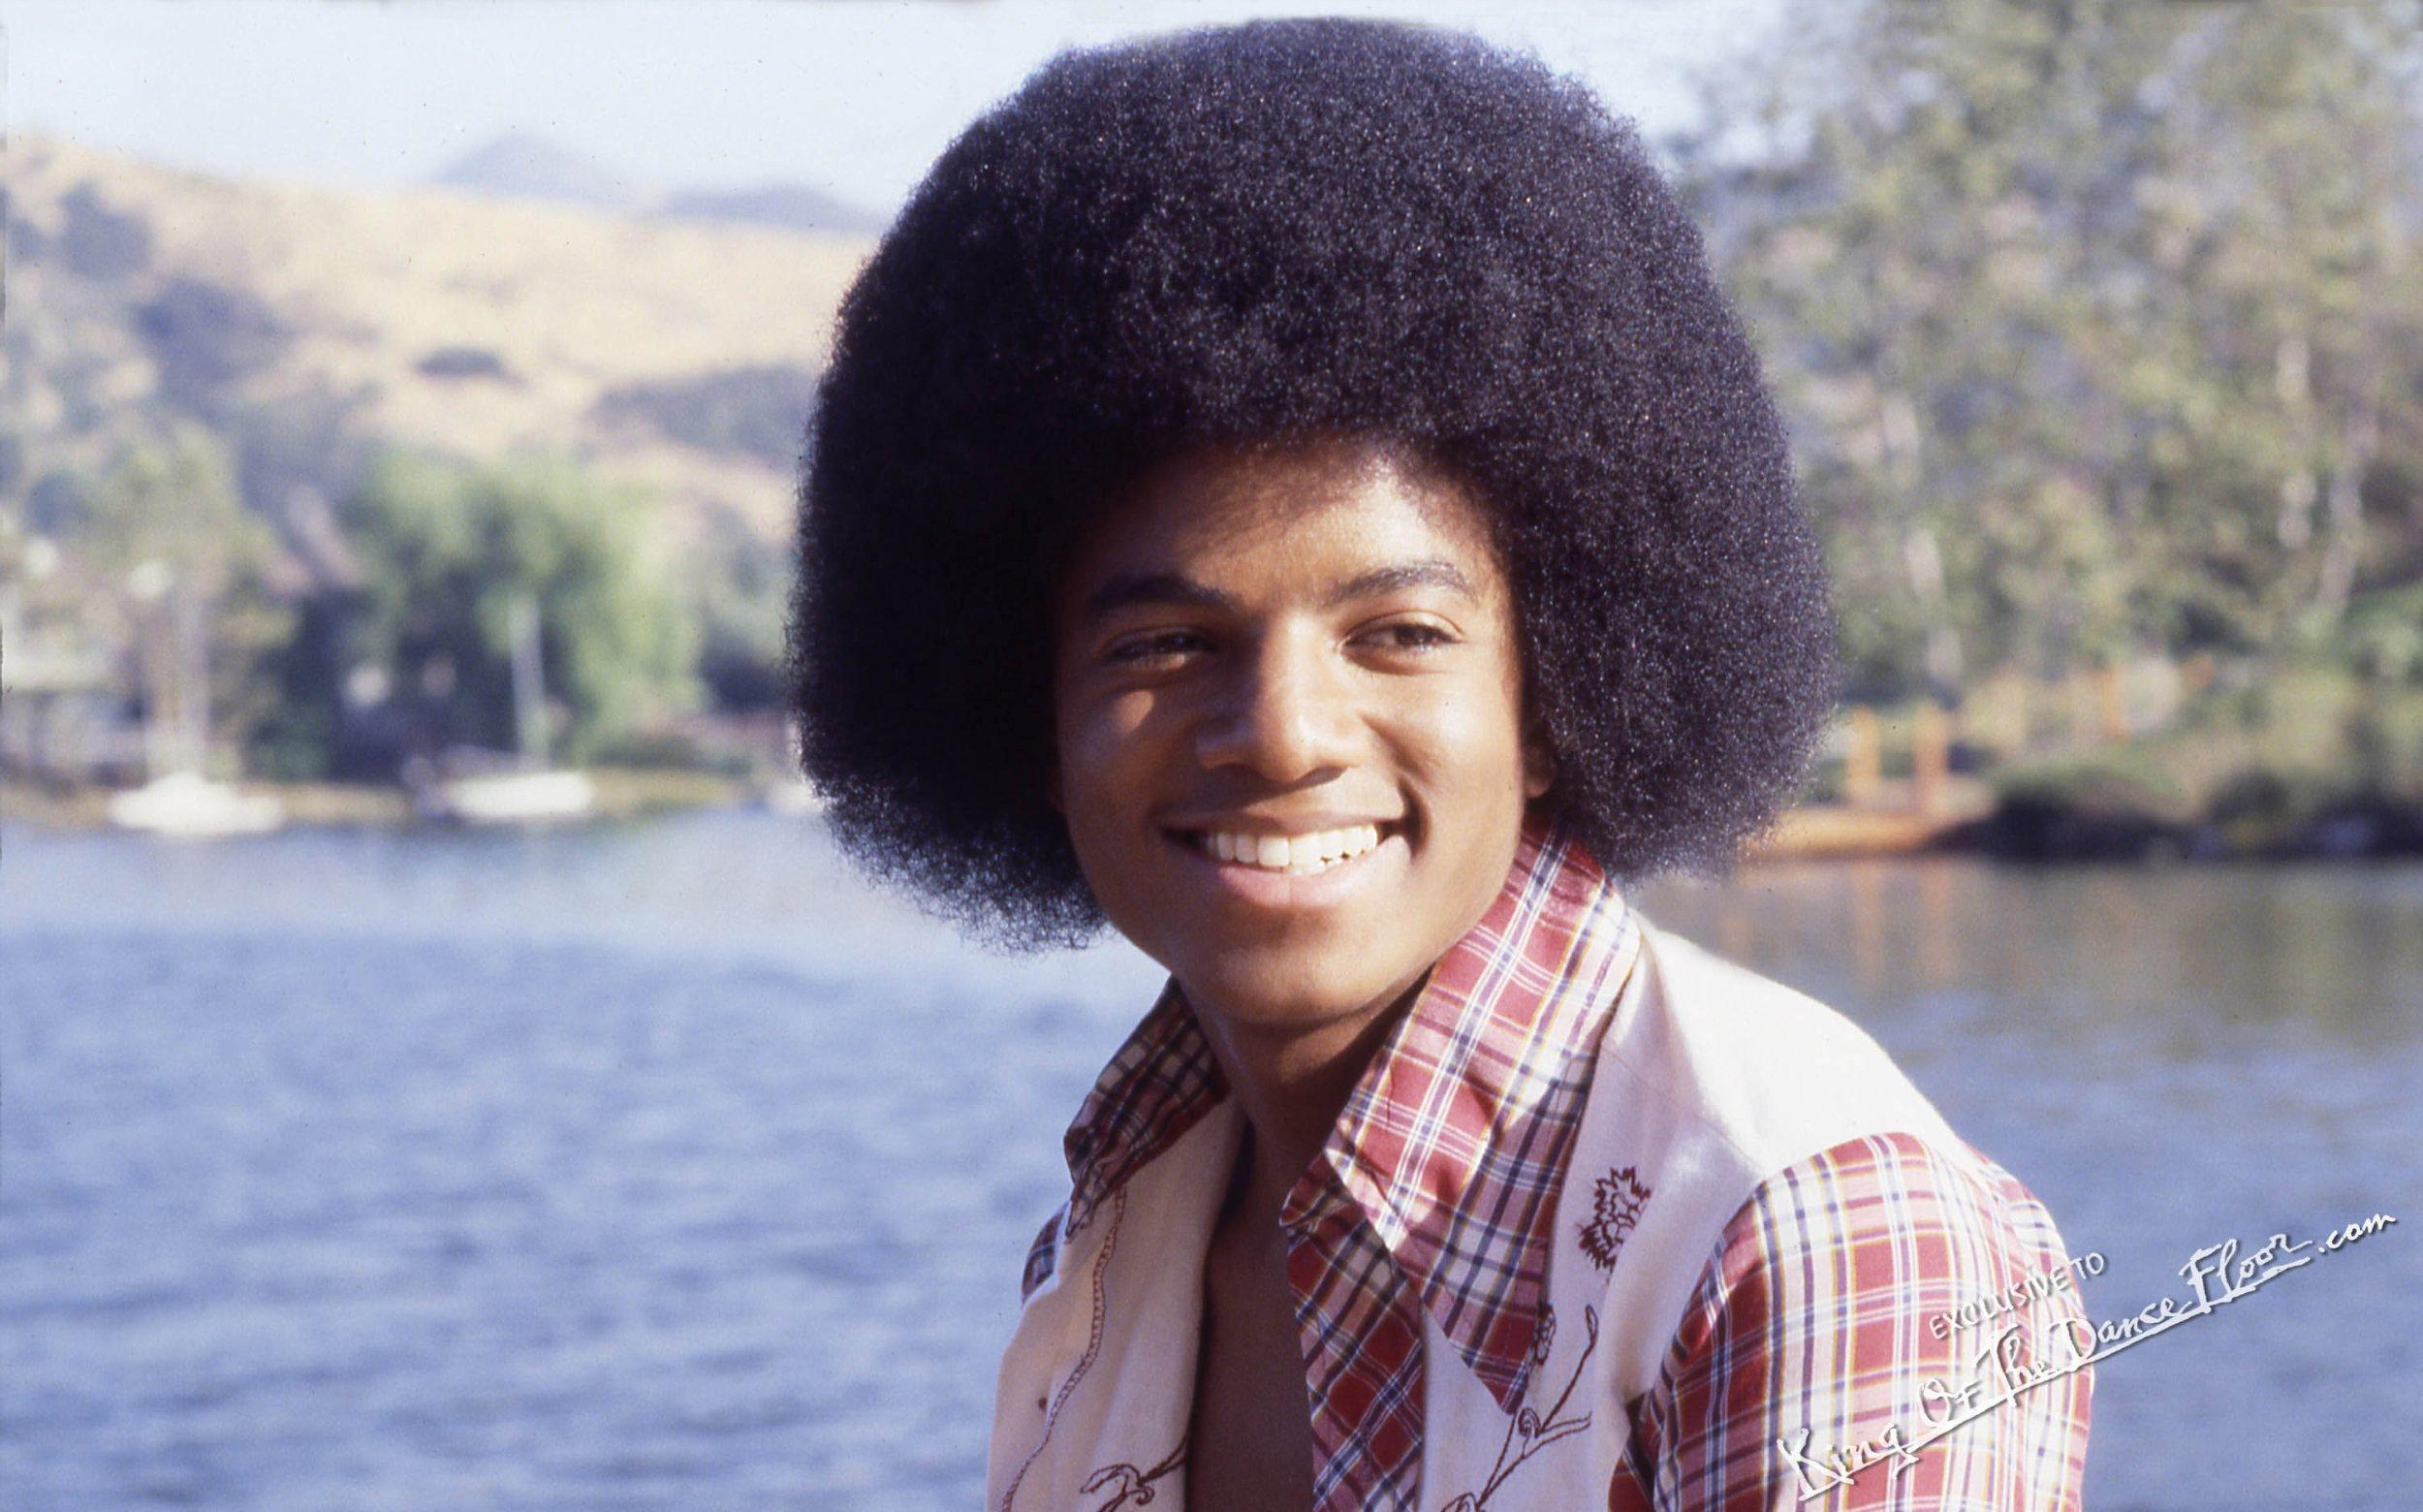 Michael Jackson (HQ High Quality)